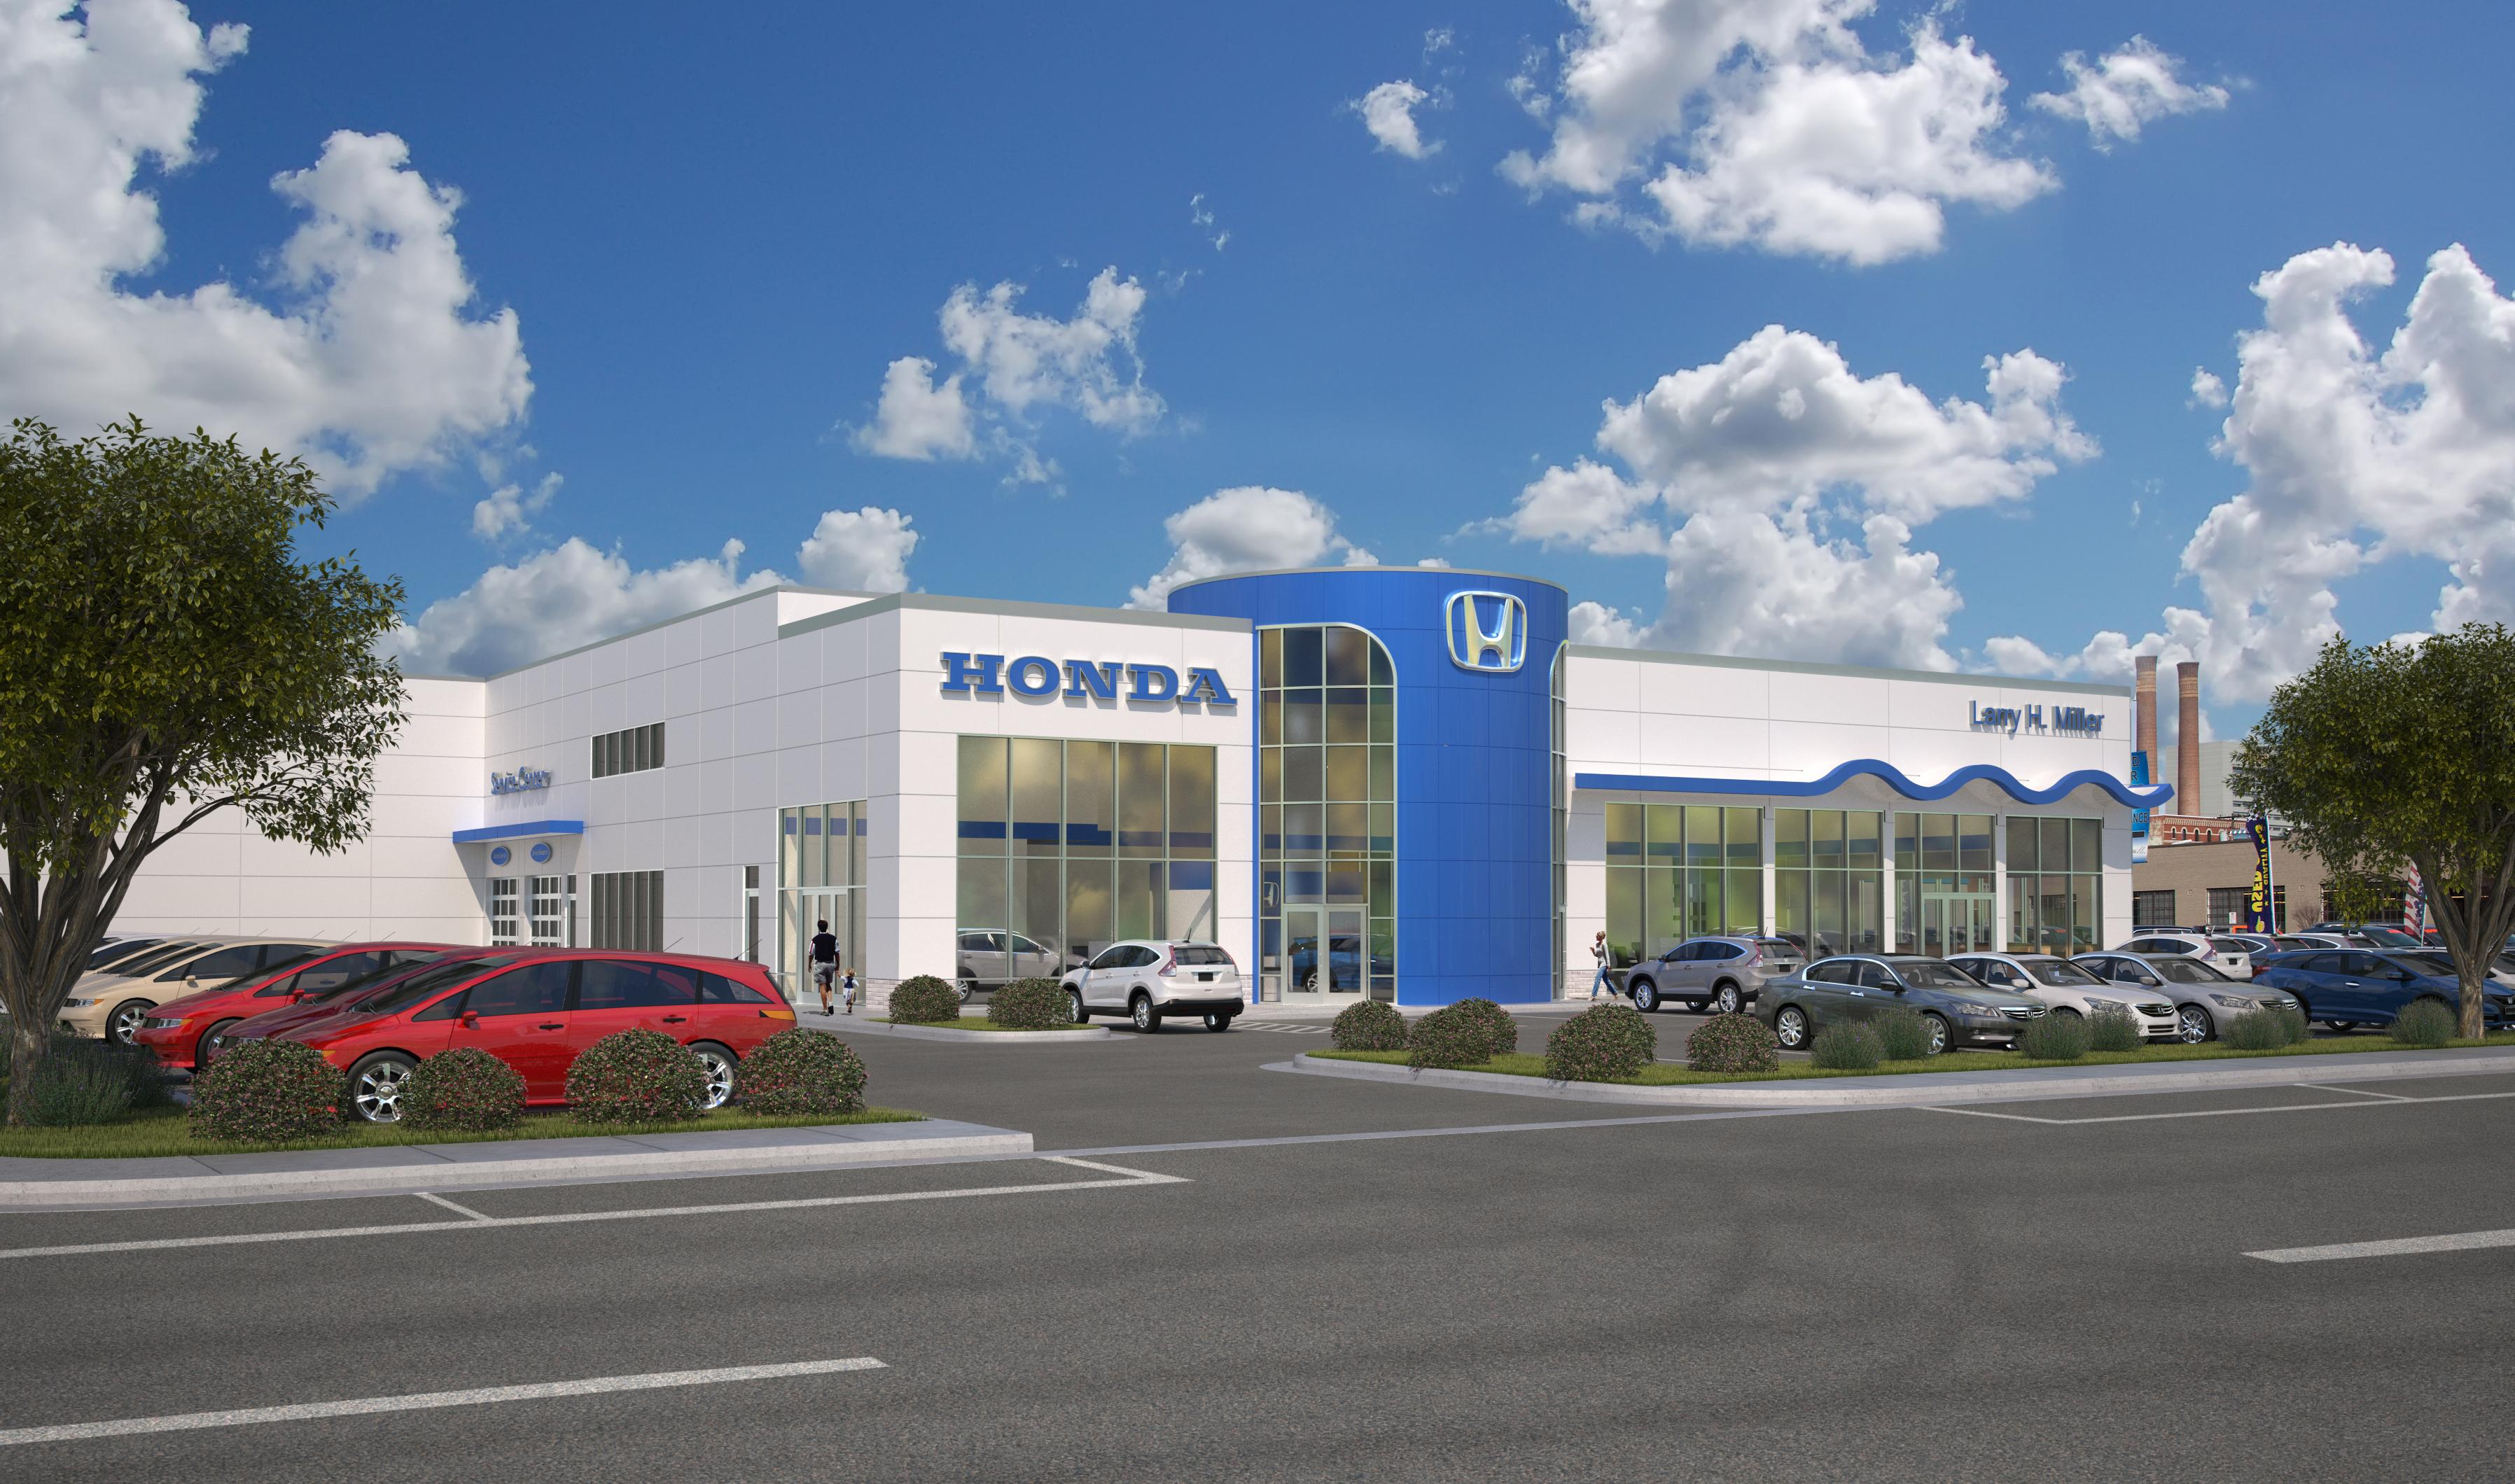 Larry Miller Honda >> Downtown Spokane Auto Dealer Begins Construction On Honda